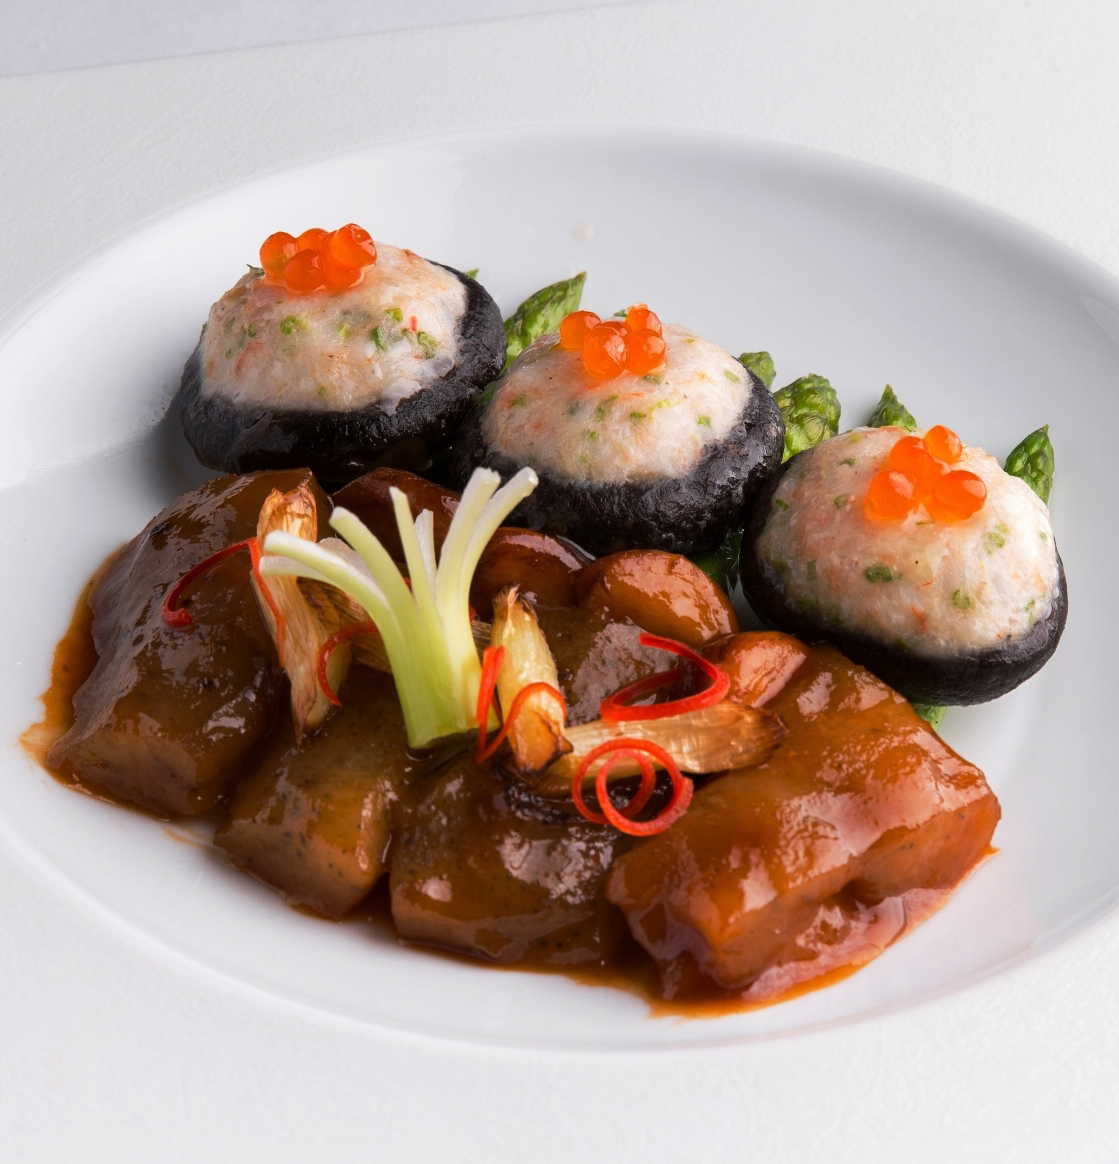 Braised Stuffed Black Mushroom with Sea Cucumber in Supreme Oyster Sauce